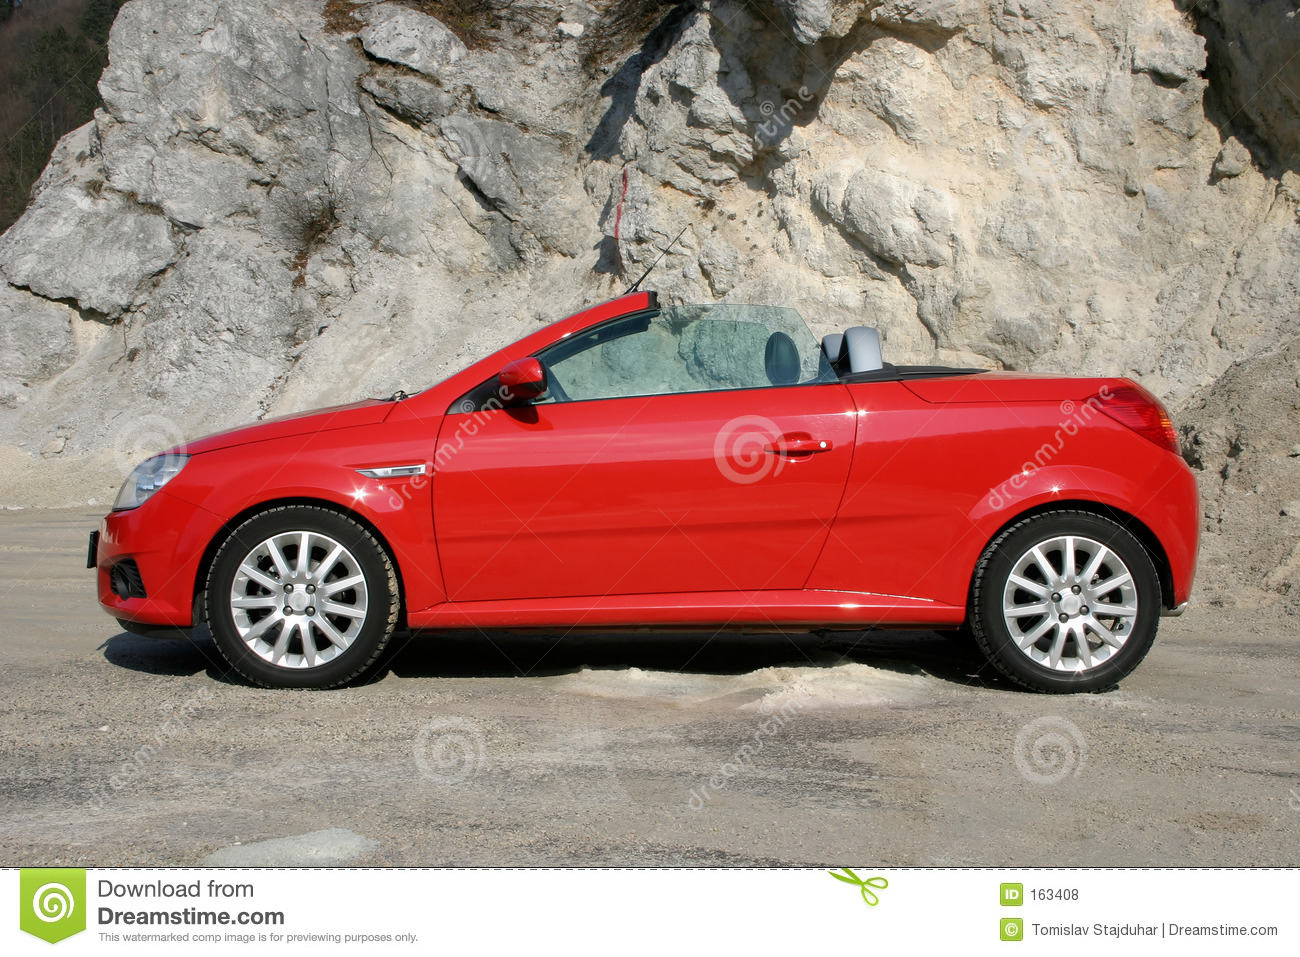 How To Sell A Car Fast >> Open top sports car stock photo. Image of coupe, abstract - 163408